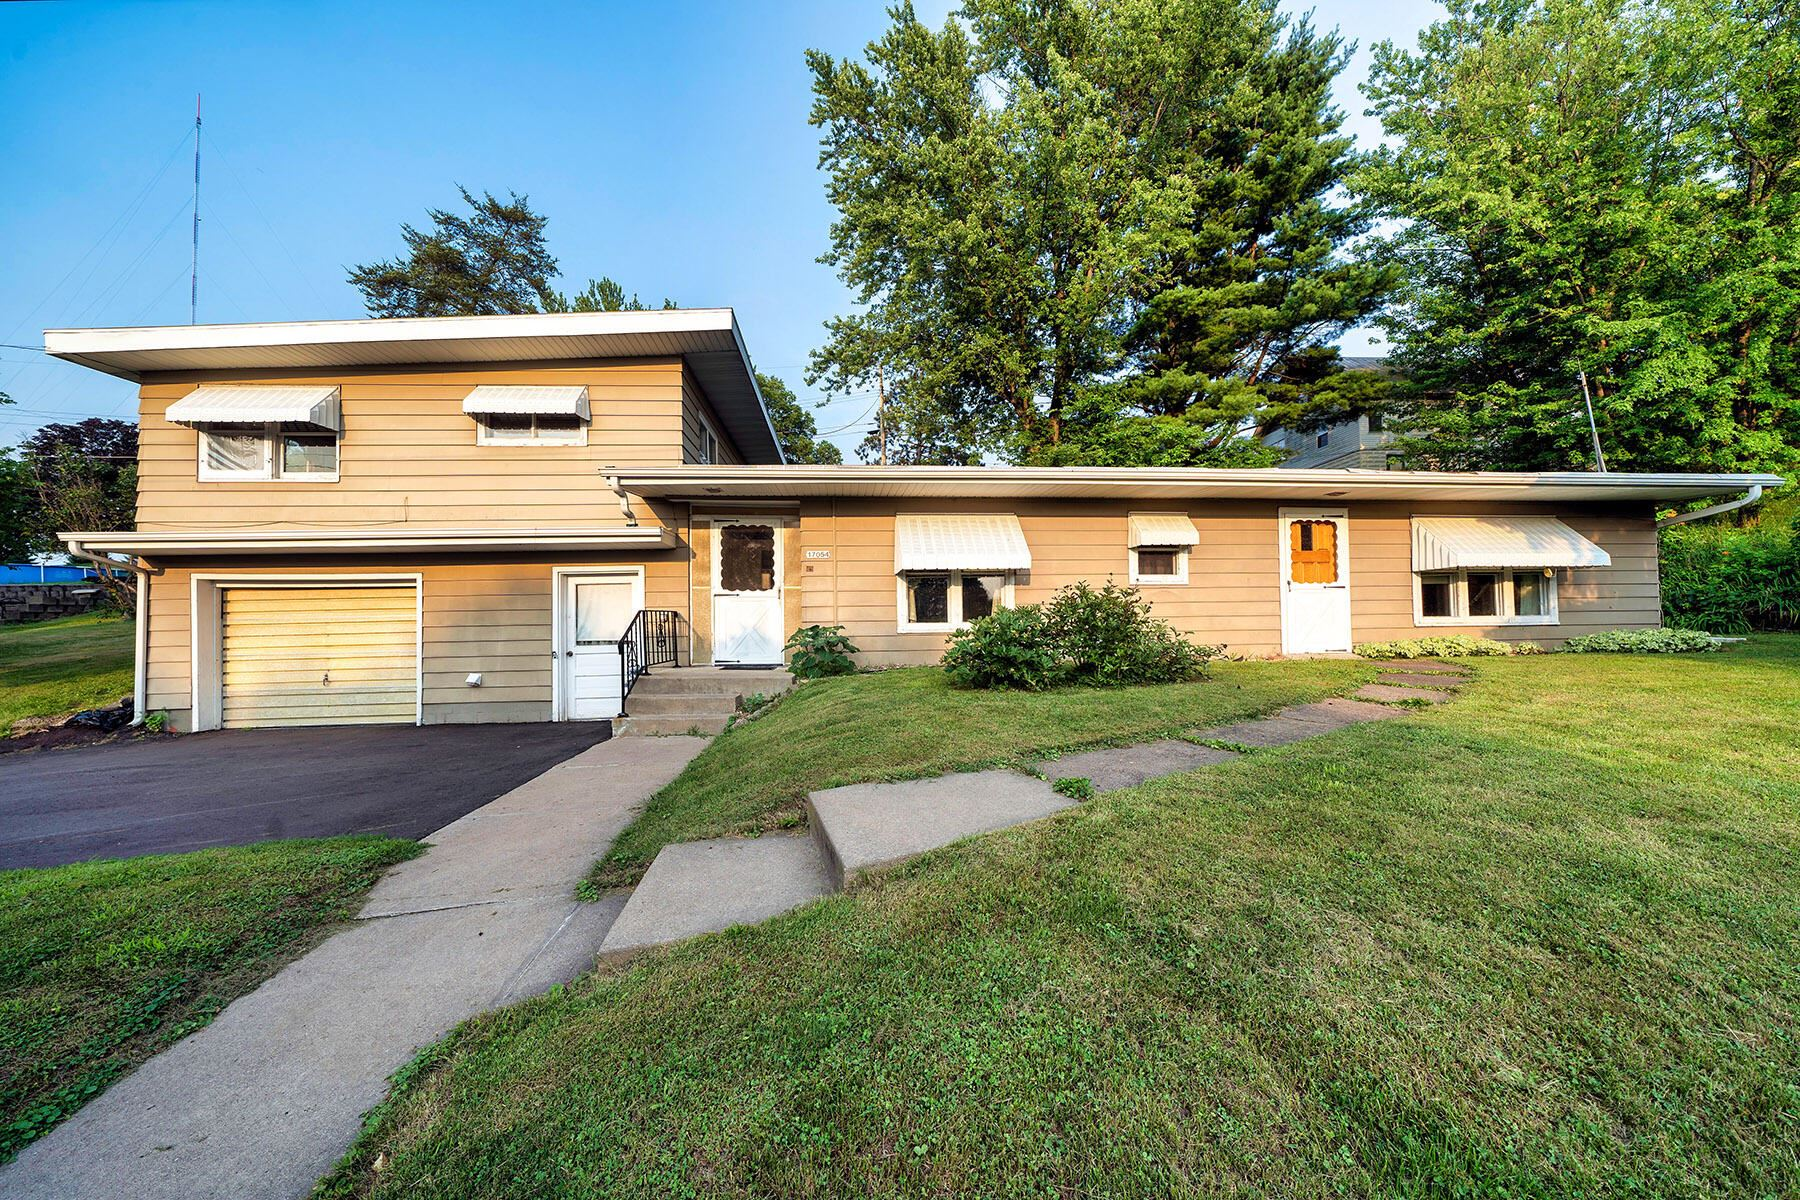 17054 Fairview st, Galesville, WI 54630 - MLS#: 1753287